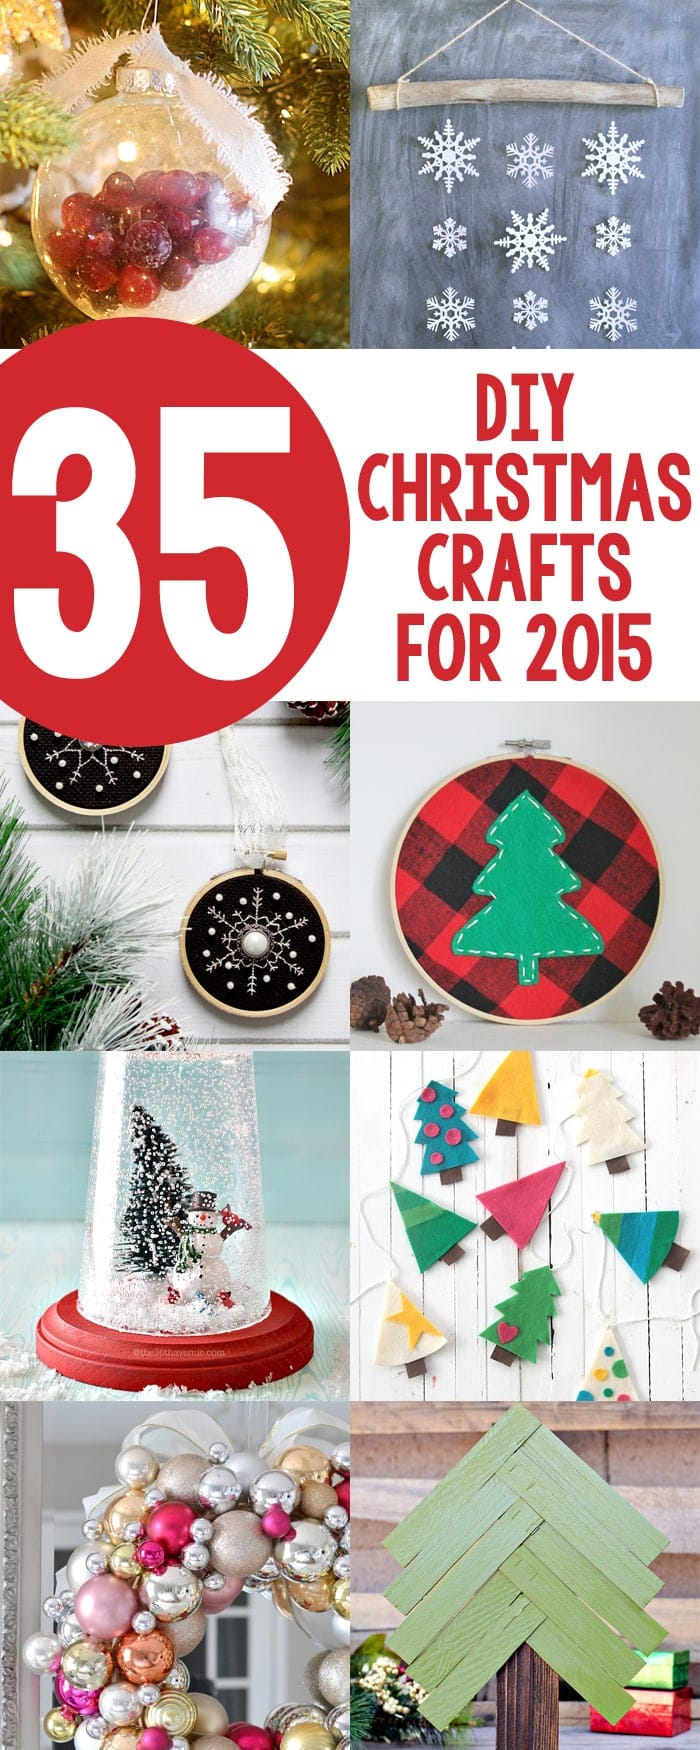 diy craft ideas for christmas 35 diy crafts for 2015 yellow bliss road 6453